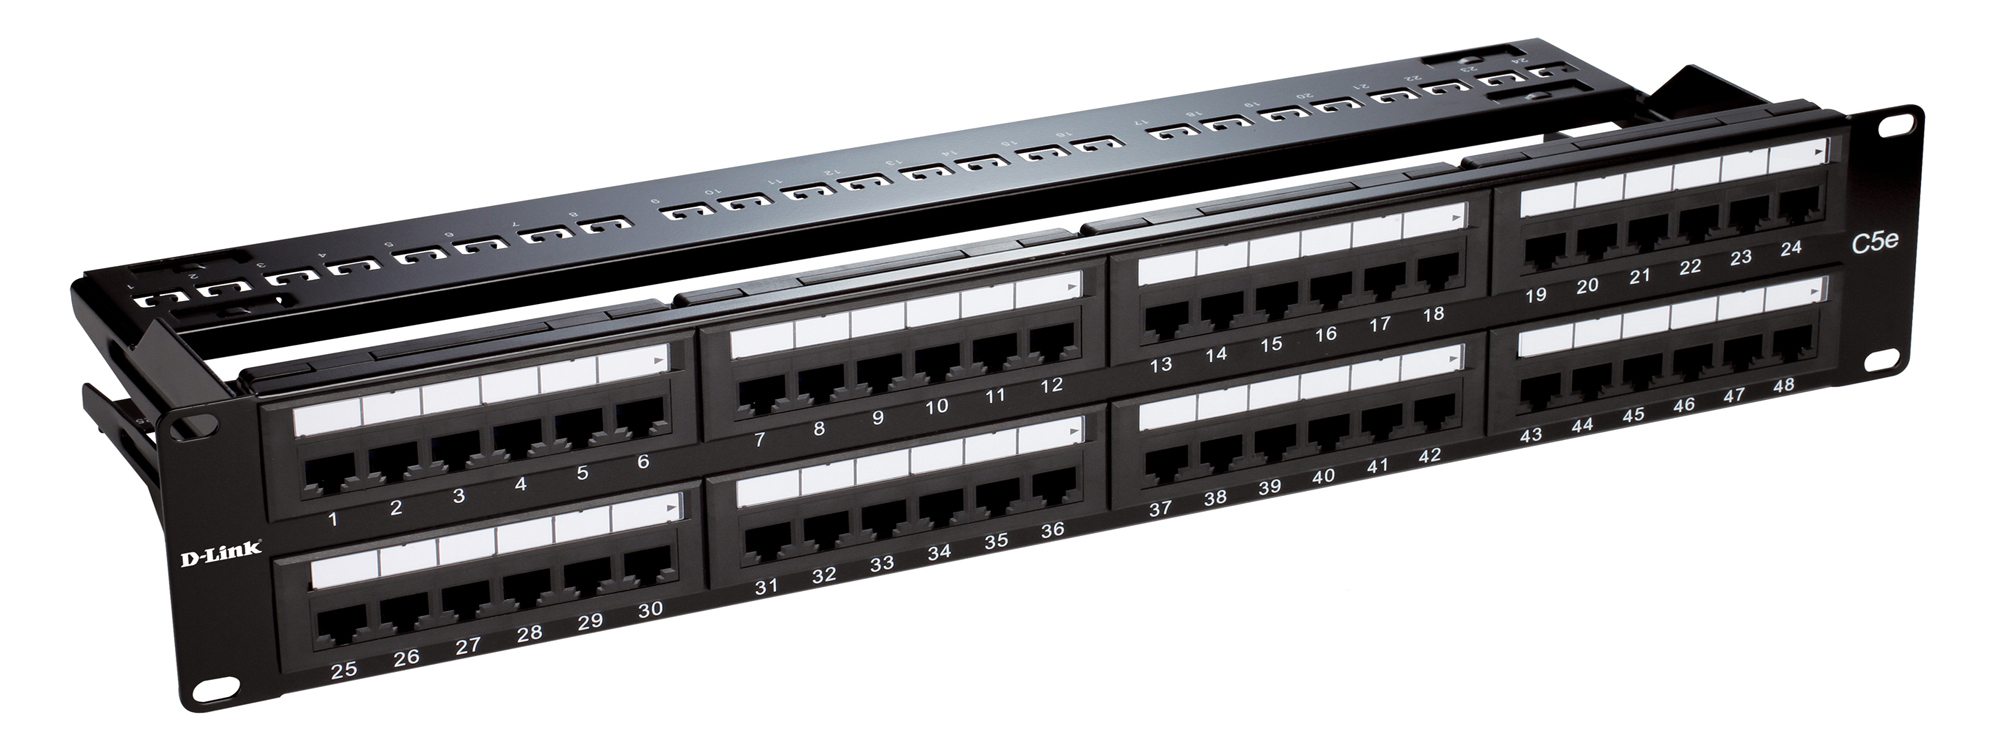 D-Link Unshielded 48-Port Full-Loaded Patch Panel